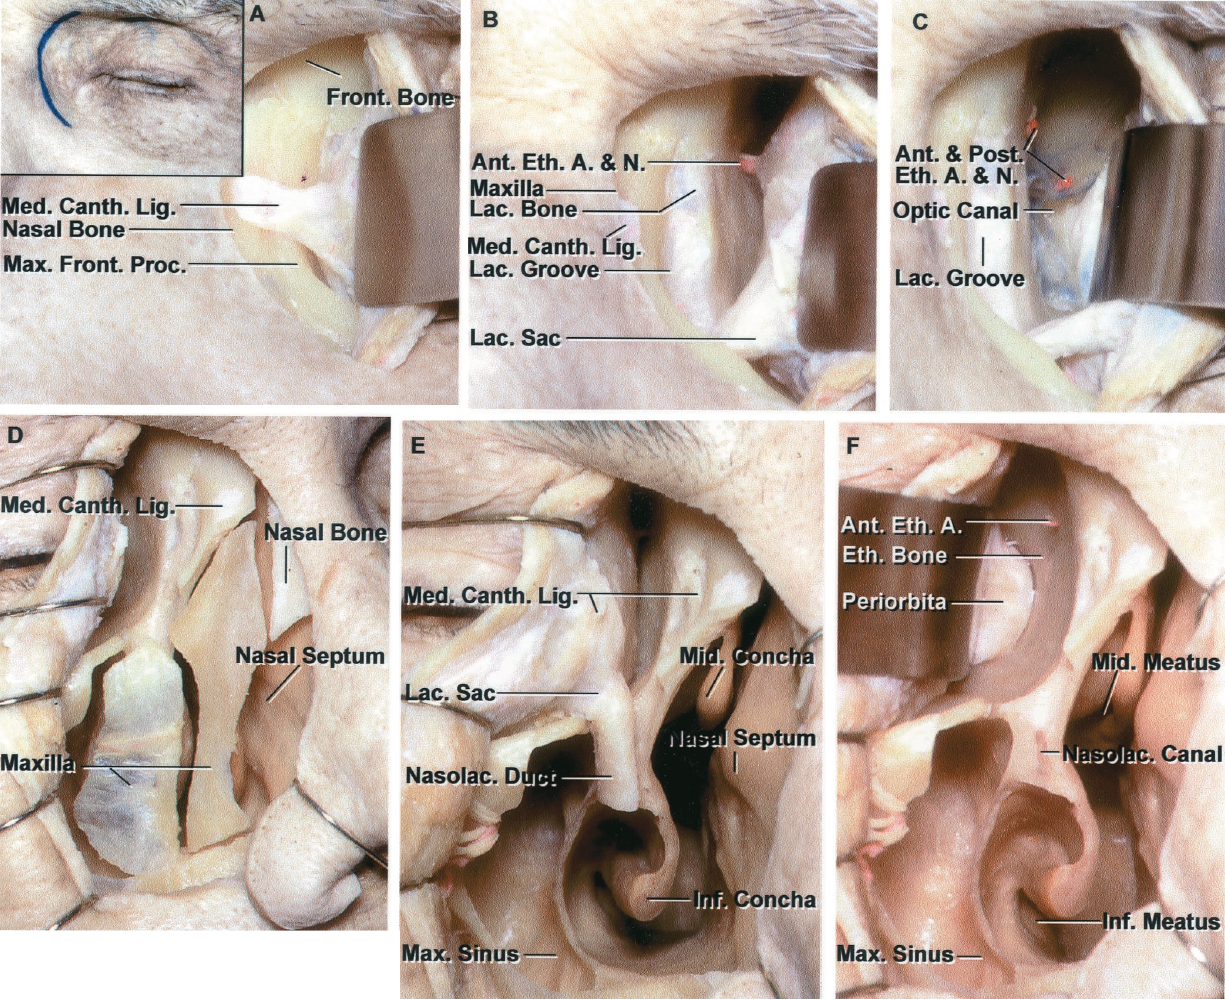 FIGURE 7.13. Medial orbital approach. A–C, medial orbital exposure. A, the medial orbital incision on the left side is shown in the inset. The approach exposes the medial orbital wall, ethmoid air cells, and sphenoid sinus back to the level of the optic canal. The periorbita has been elevated from the frontal process of the maxillary bone and adjacent frontal bone forming the medial part of the orbital rim to expose the medial canthal ligament, which, if divided, should be reapproximated at the end of the procedure to maintain canthal balance. B, the medial palpebral ligament has been divided and the edges of the divided ligament have been preserved for re-approximation at the end of the procedure. The lacrimal sac has been retracted laterally. The exposure extends backward along the lacrimal and ethmoid bones to the level where the anterior ethmoidal artery enters the anterior ethmoidal canal. The lacrimal groove, in which the lacrimal sac sits, is formed anteriorly by the maxilla and posteriorly by the lacrimal bone. C, the exposure has been extended backward along the ethmoid, lacrimal, and frontal bones, past the level where the anterior and posterior ethmoidal arteries enter the anterior and posterior ethmoidal canal to the orbital apex and anterior end of the optic canal. The medial ethmoid air cells and adjacent part of the sphenoid sinus can be removed to expose the optic nerve in the optic canal. This approach is sometimes used to decompress the optic canal. D–F, combined medial orbital and maxillary exposures. D, the exposure includes not only the medial orbital wall, but also the adjacent part of the floor. Two small maxillary osteotomies have been completed. The medial one includes the part of the maxilla forming the anterior wall of the nasal cavity. The lateral osteotomy exposes the anterior part of the maxillary sinus. The medial palpebral ligament has been divided to expose the medial wall of the orbit. E, removing the medial osteotomy fragment expos